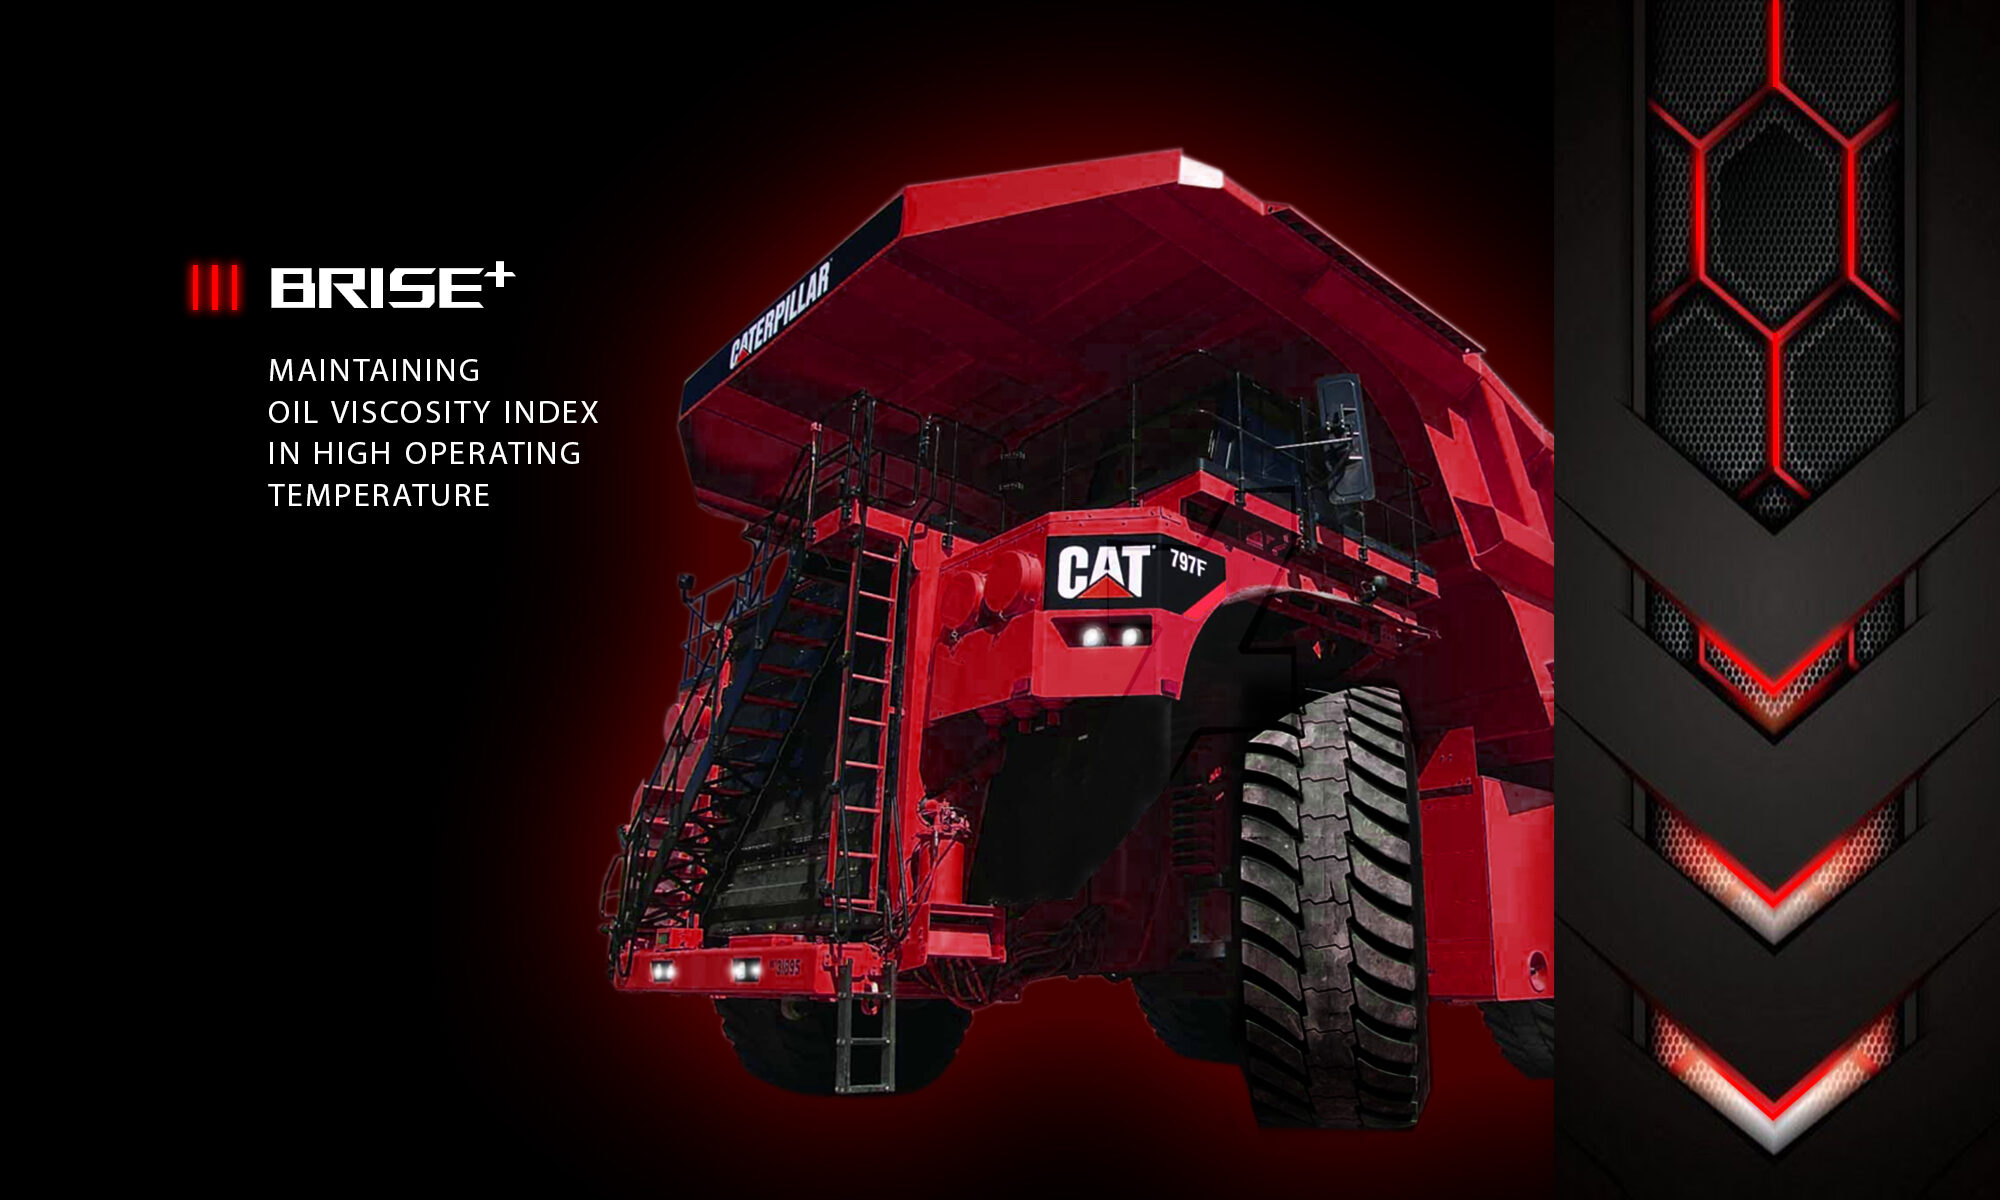 BRISE PLUS HIGH TEMPERED OPERATED OIL WITH BIG DUMPTRUCK